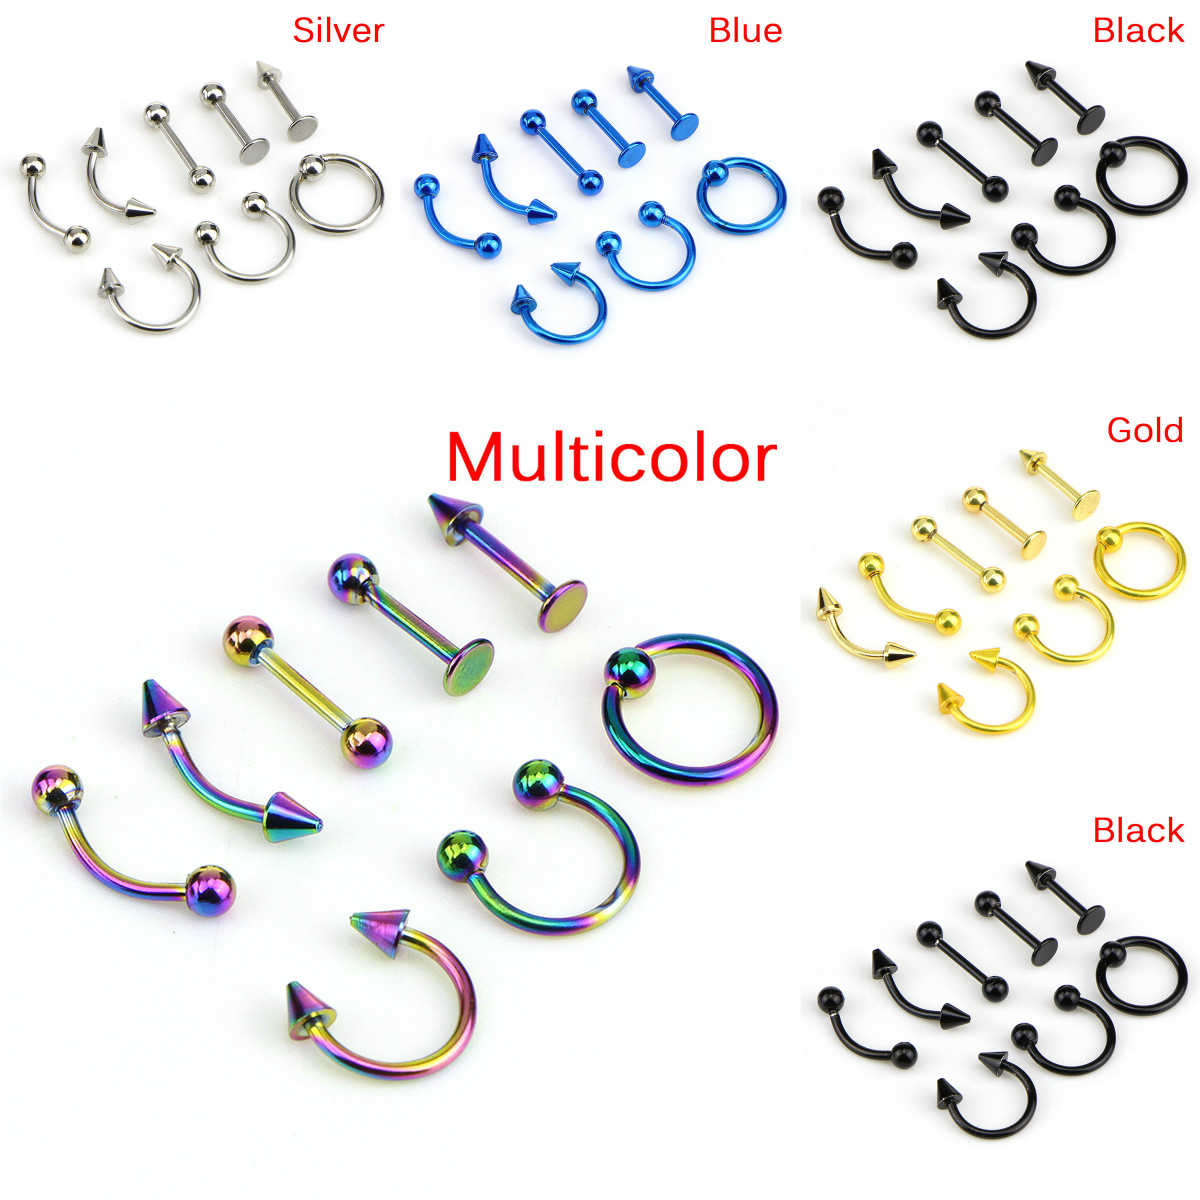 8pcs/lot Stainless Steel  Fashion 16G Titanium Anodized Body Jewelry Helix Piercing Ear Eyebrow Nose Lip Captive Rings